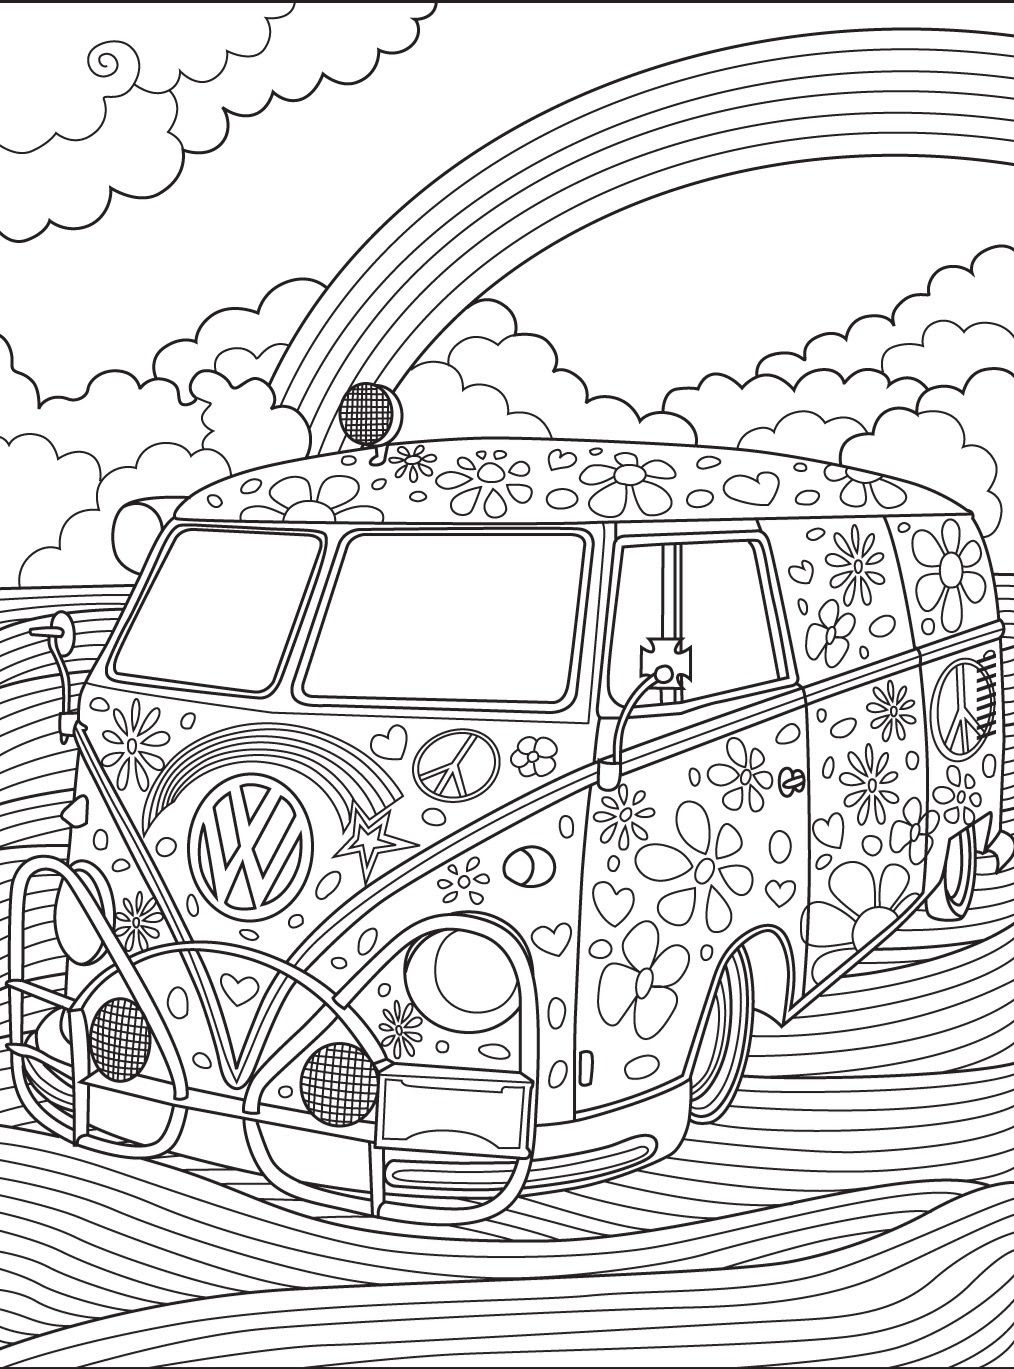 Adult Coloring Pages Cars at GetDrawings | Free download